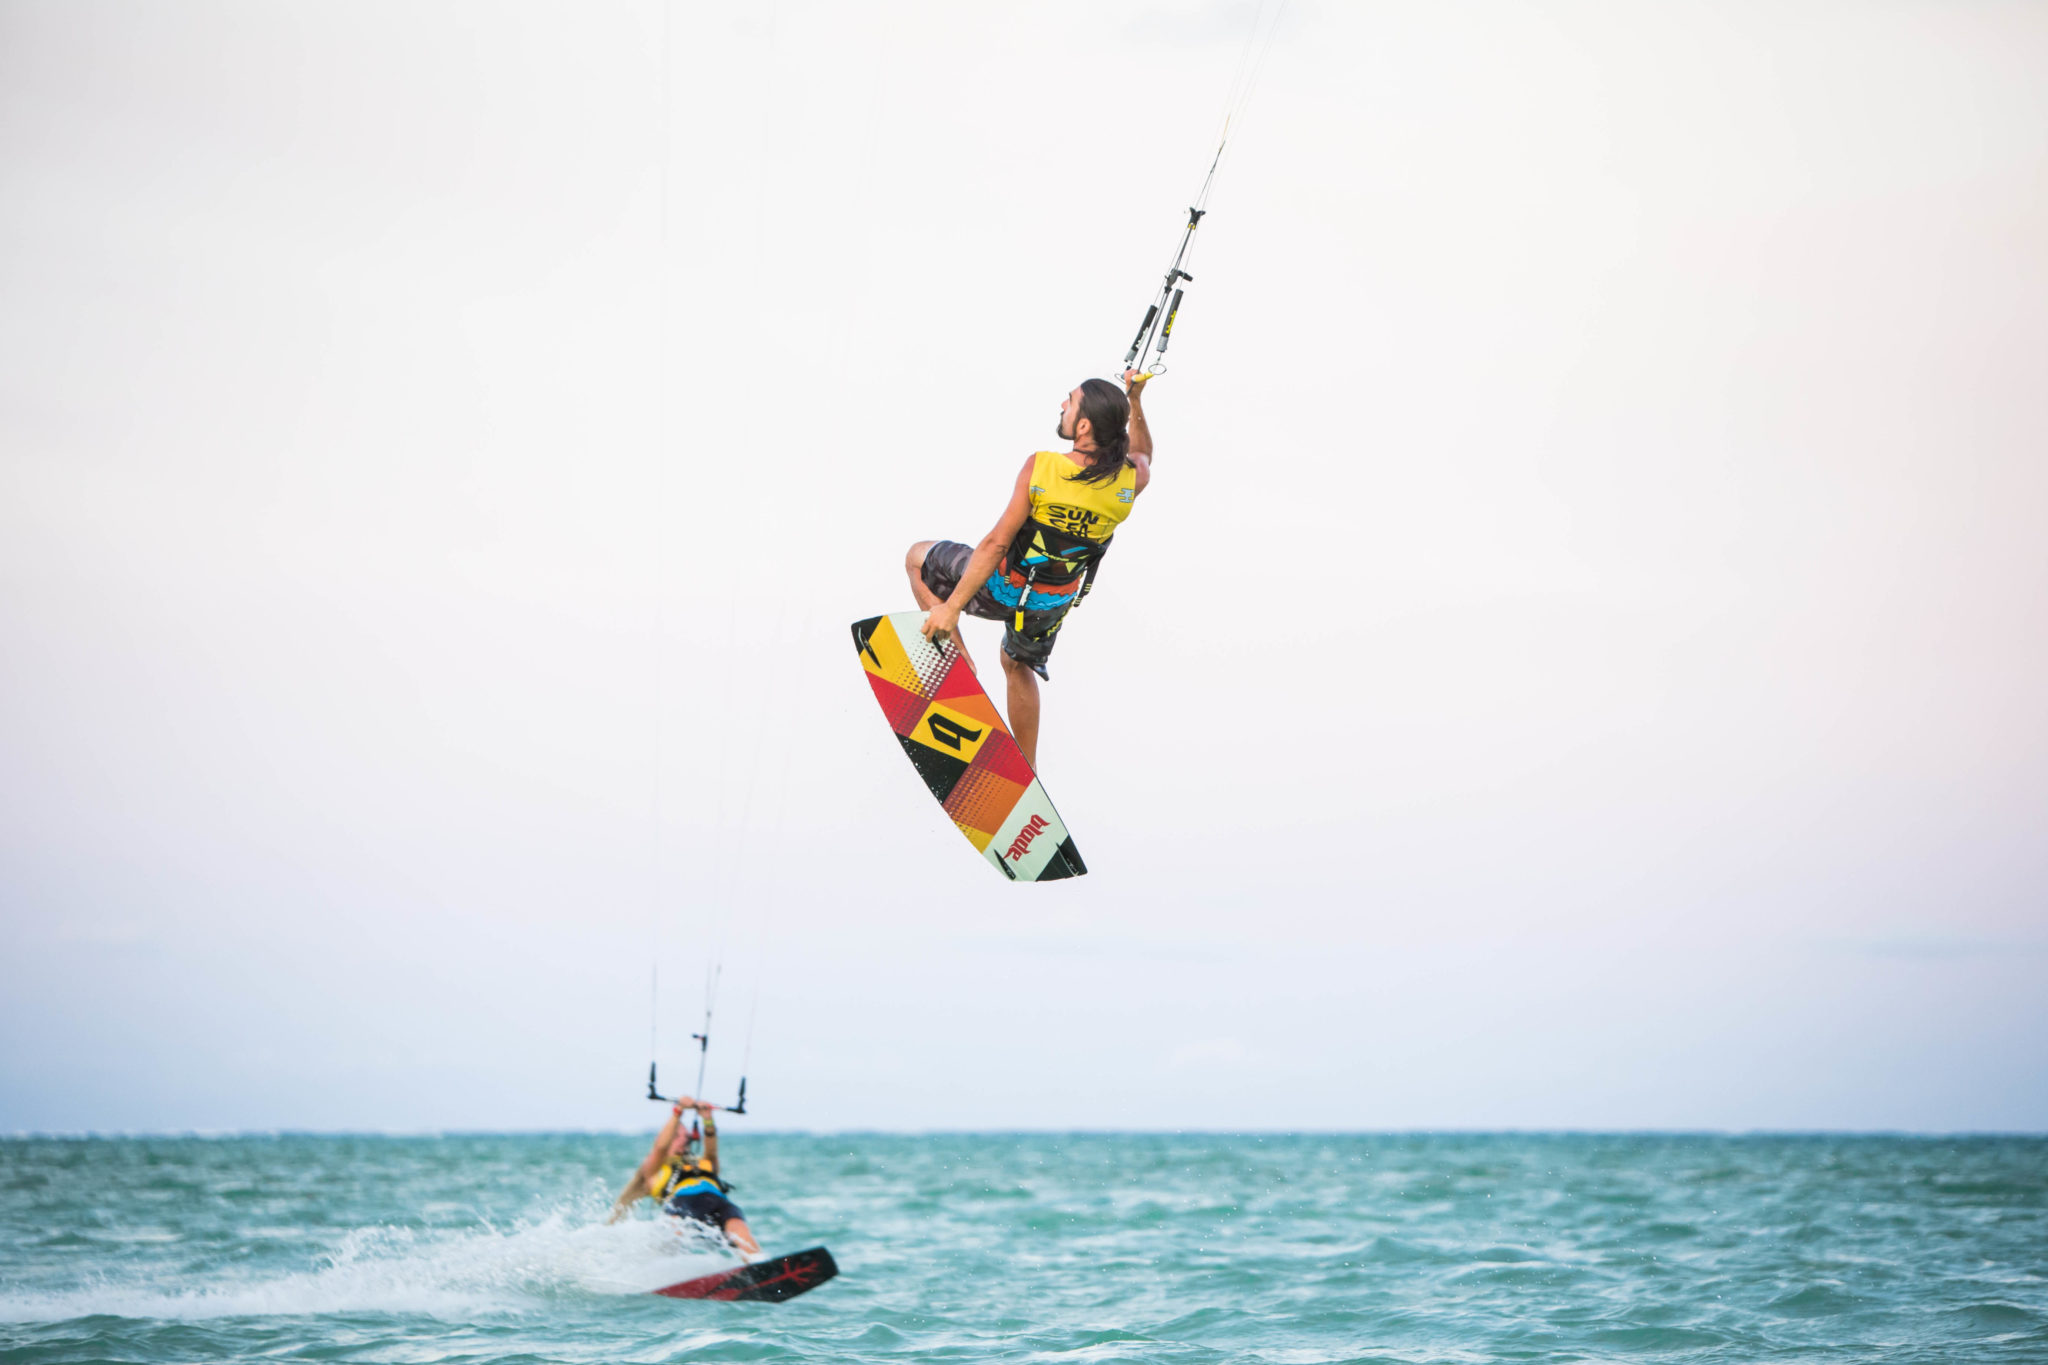 kitesurfer jumping and grabing the tail of the board in a paradise spot